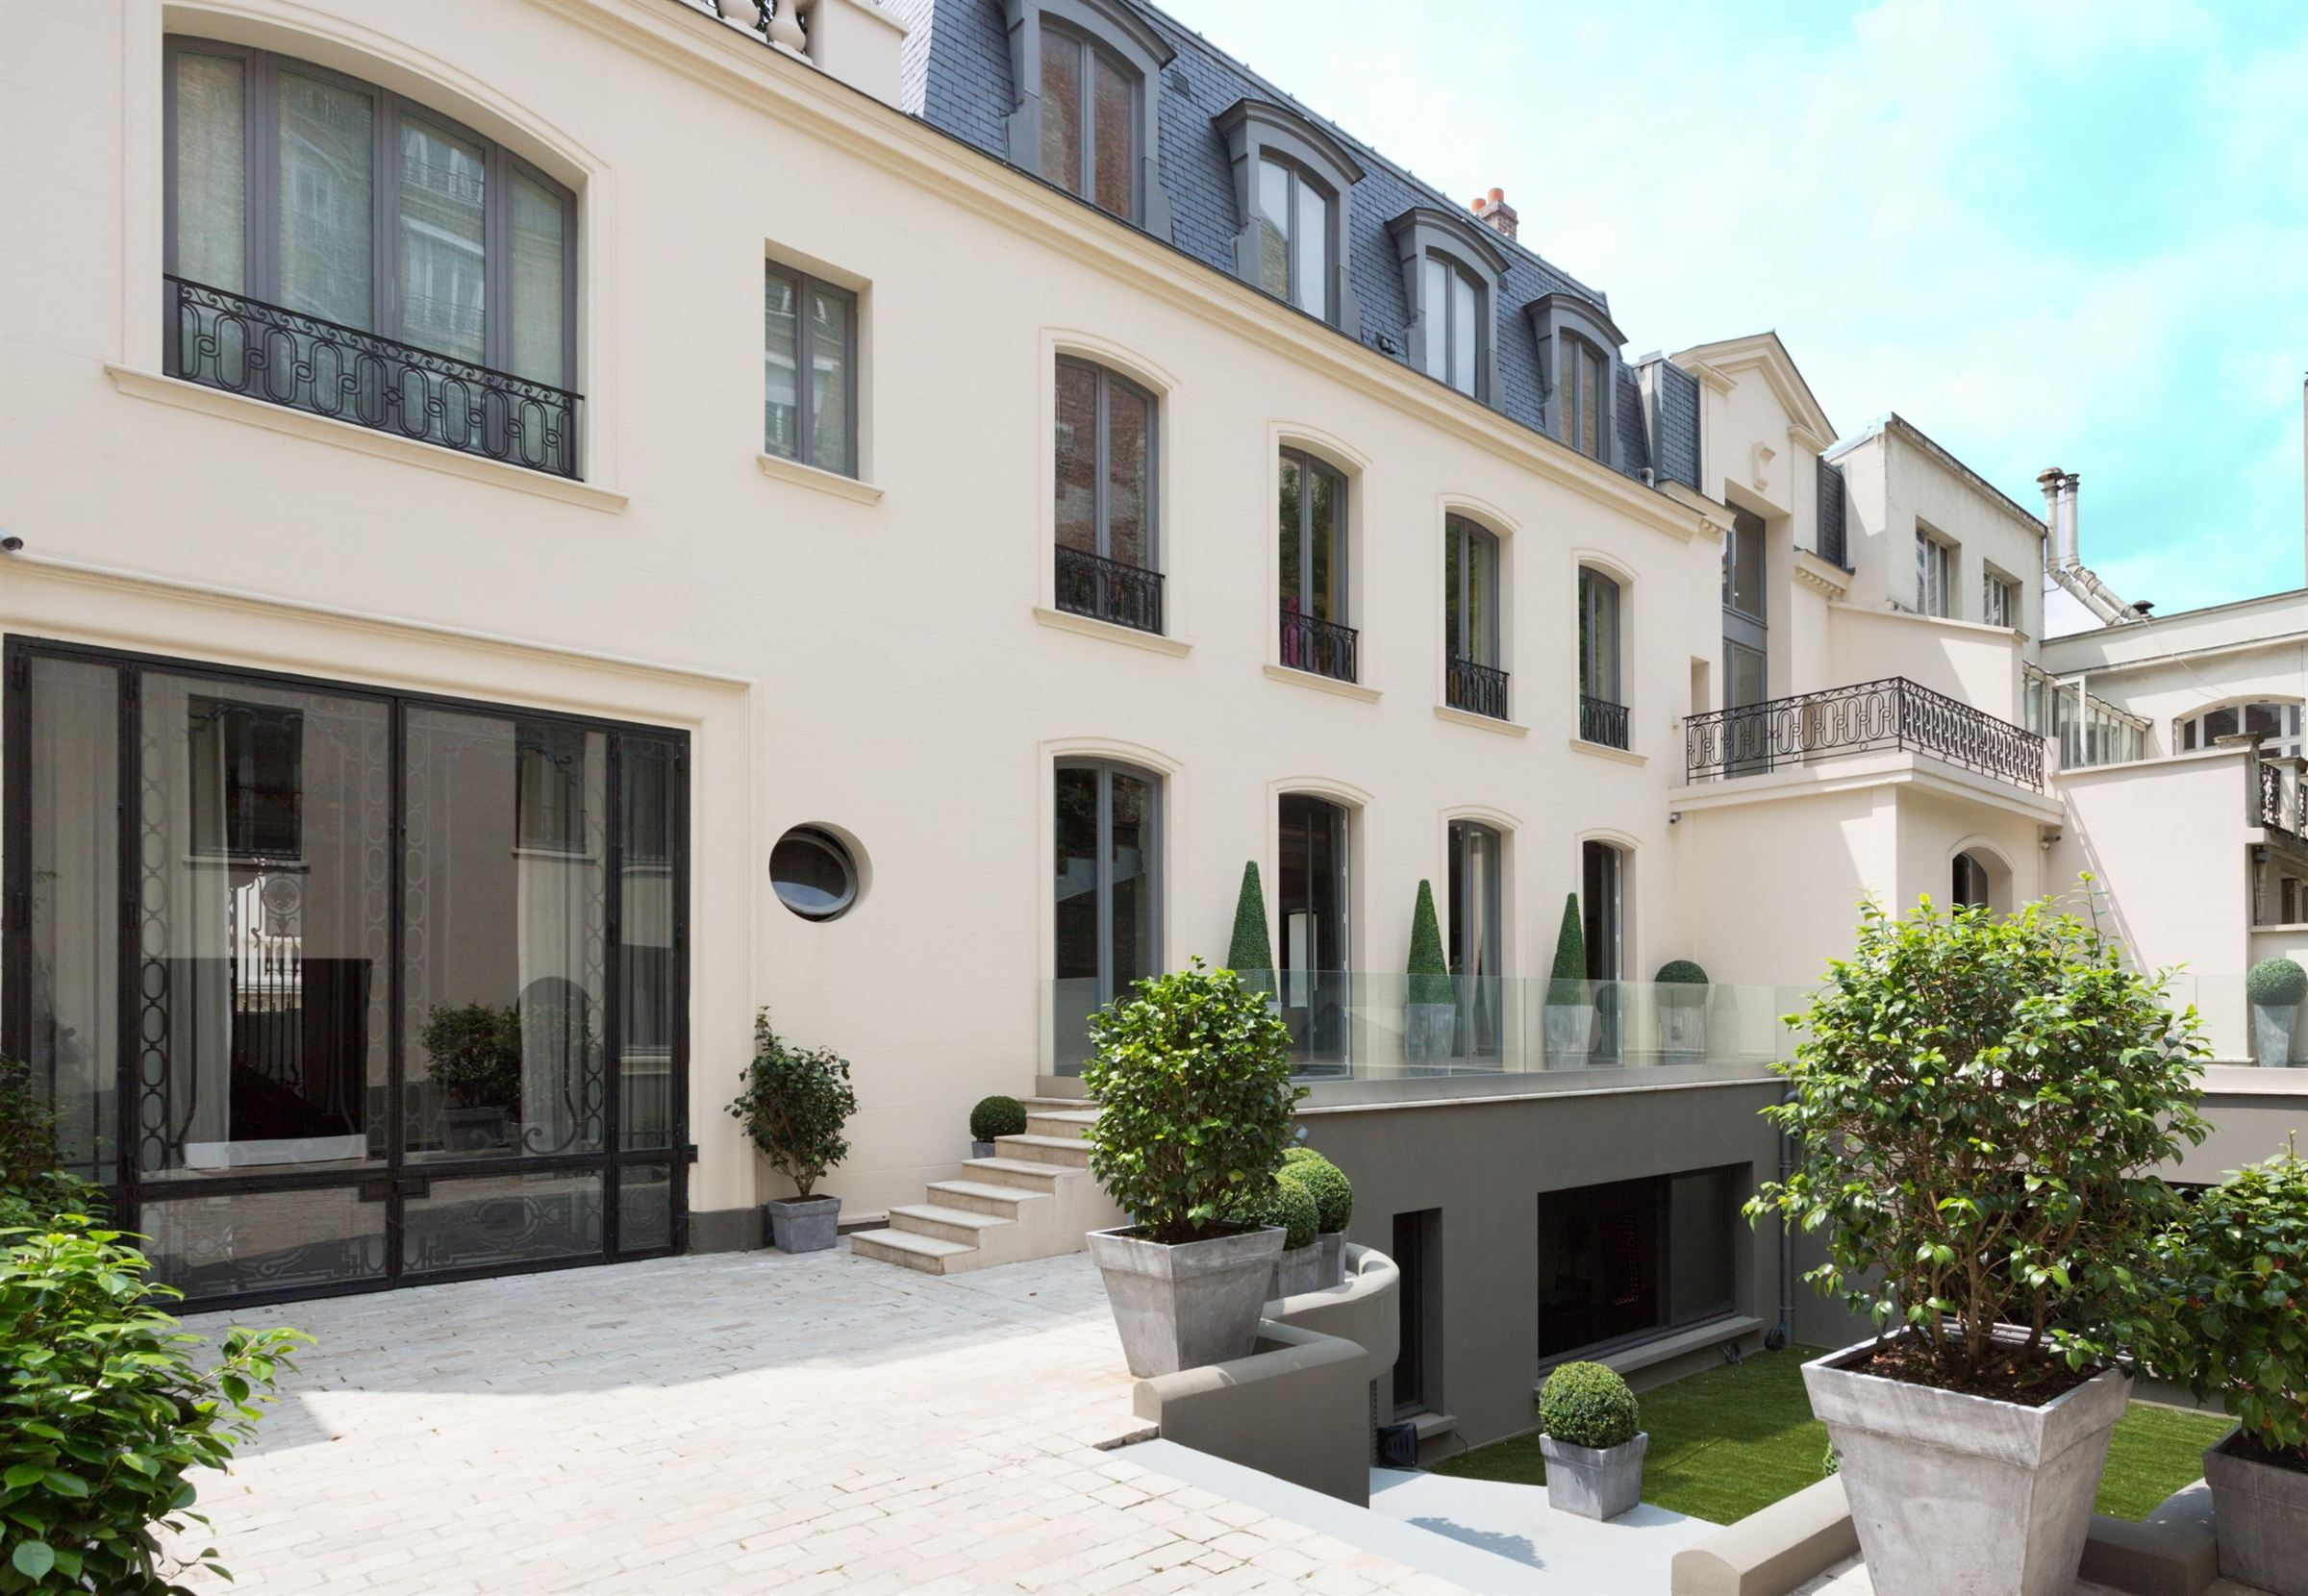 Moradia para Venda às Private Mansion for sale, renovated, Paris 16 - Foch, 68 bedrooms Paris, Ile-De-France, 75016 França